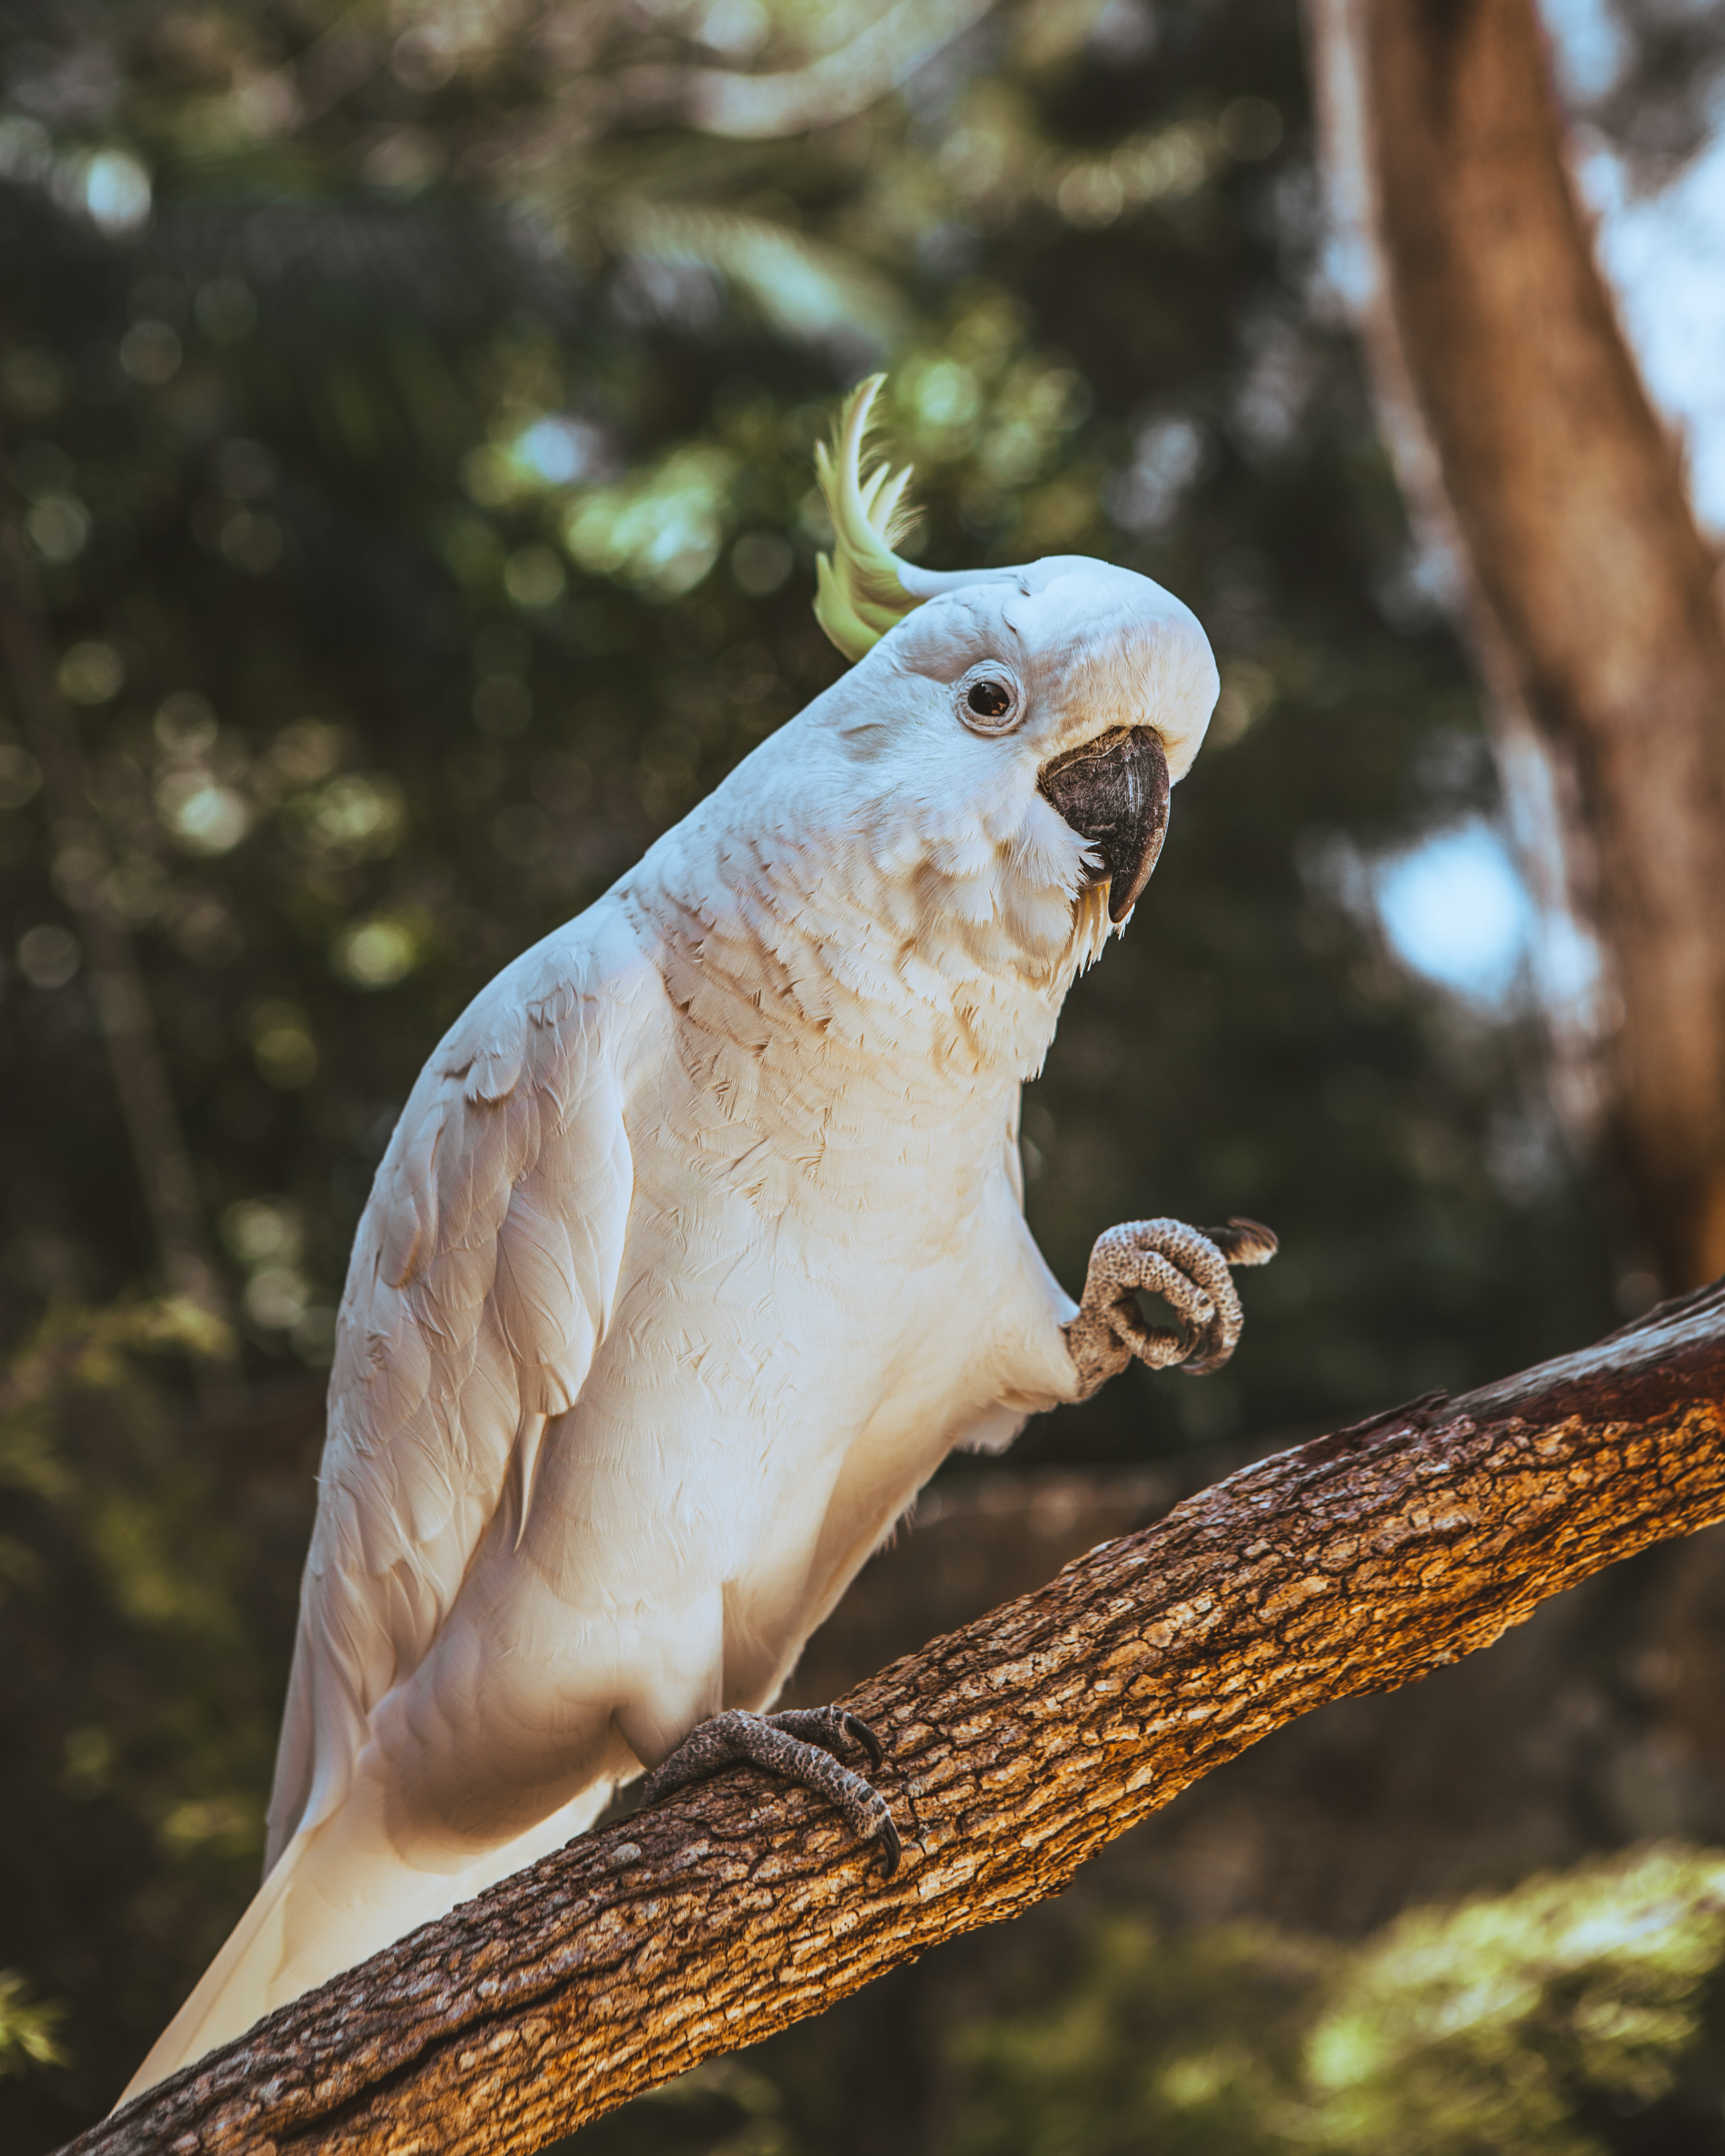 81785 download wallpaper Animals, Cockatoo, Parrots, Bird, Funny screensavers and pictures for free